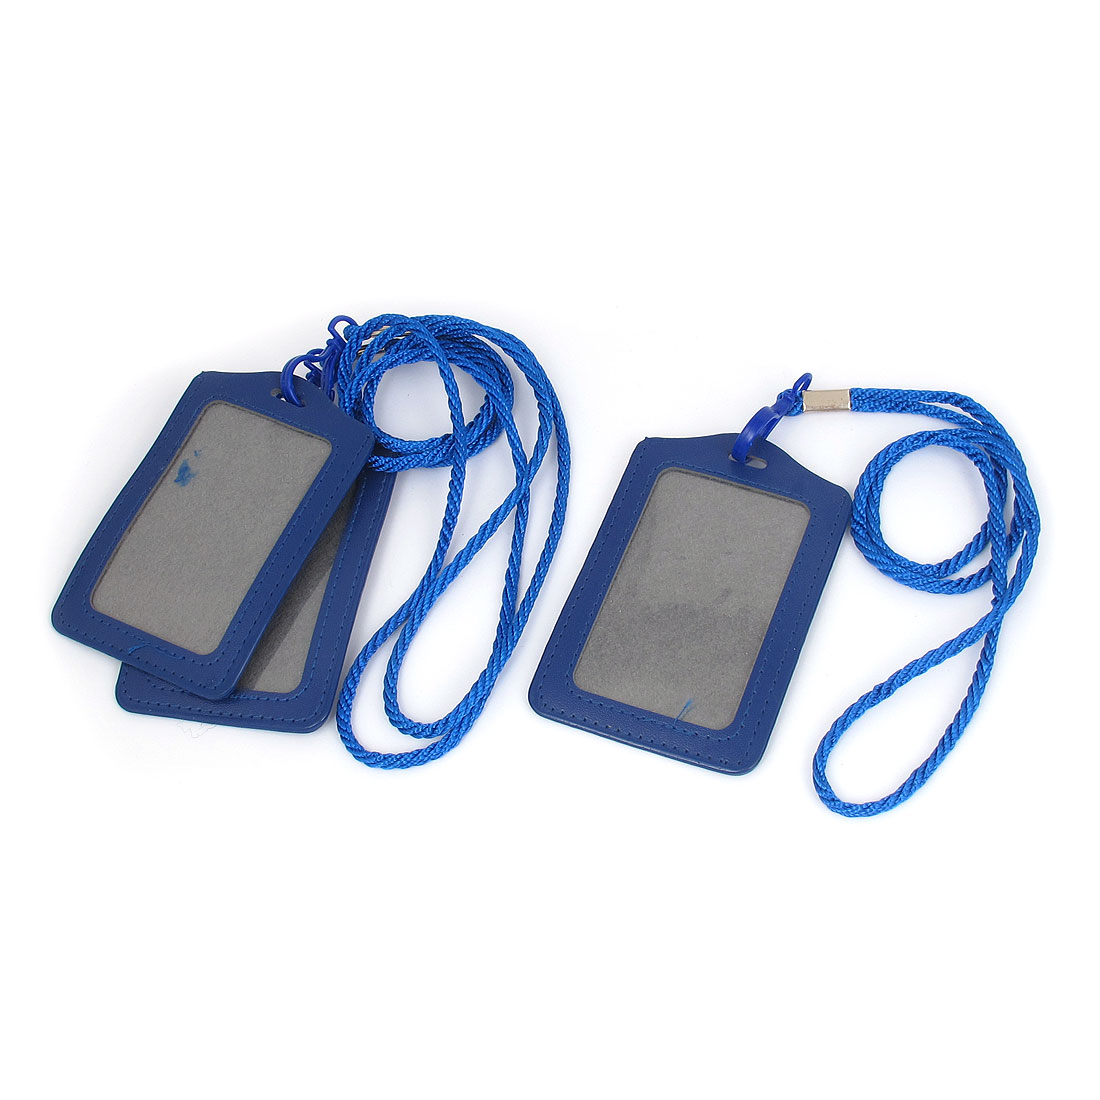 Unique Bargains 3 Pcs ID Card Holder Lanyard School Office Bank Students Stationery Blue w Neck Strap